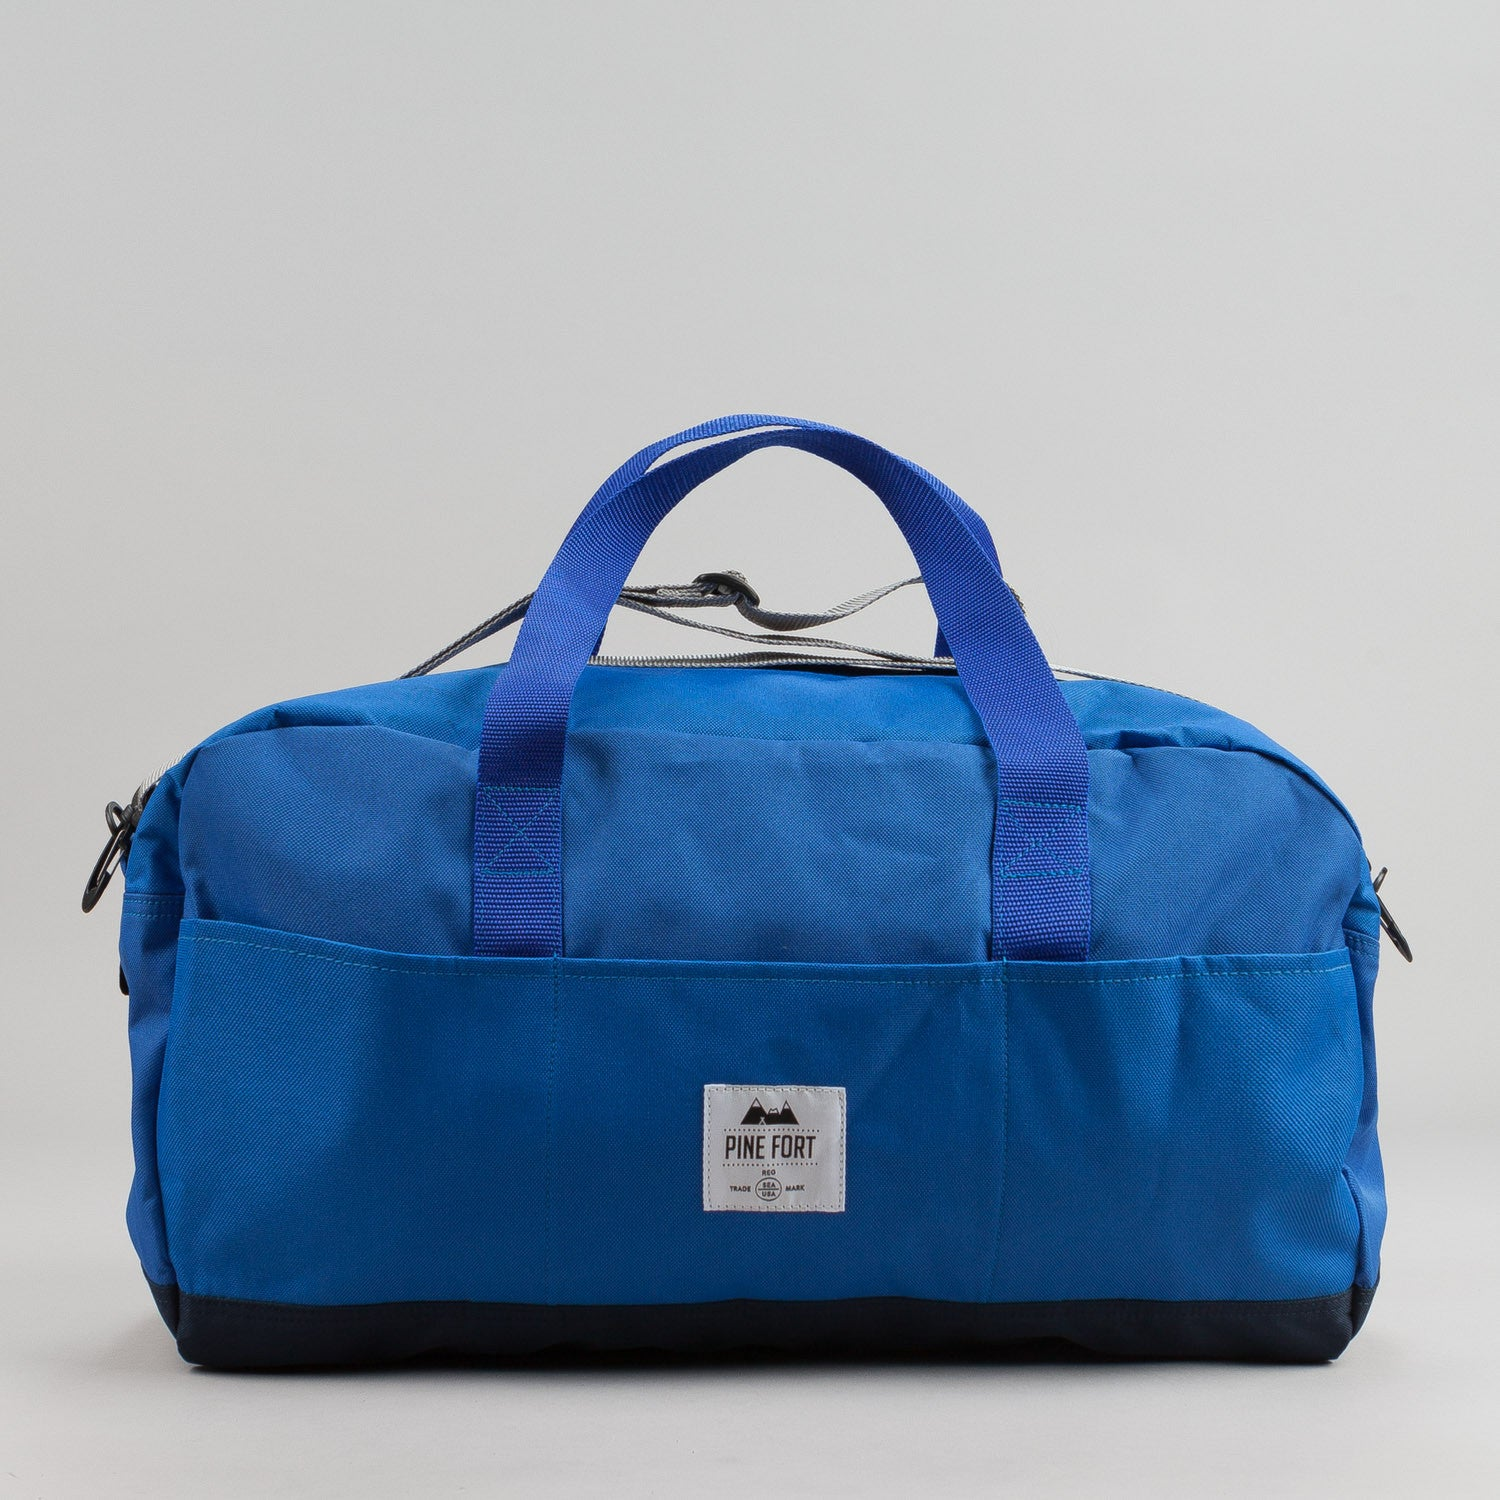 Pine Fort Duffle Royal / Navy